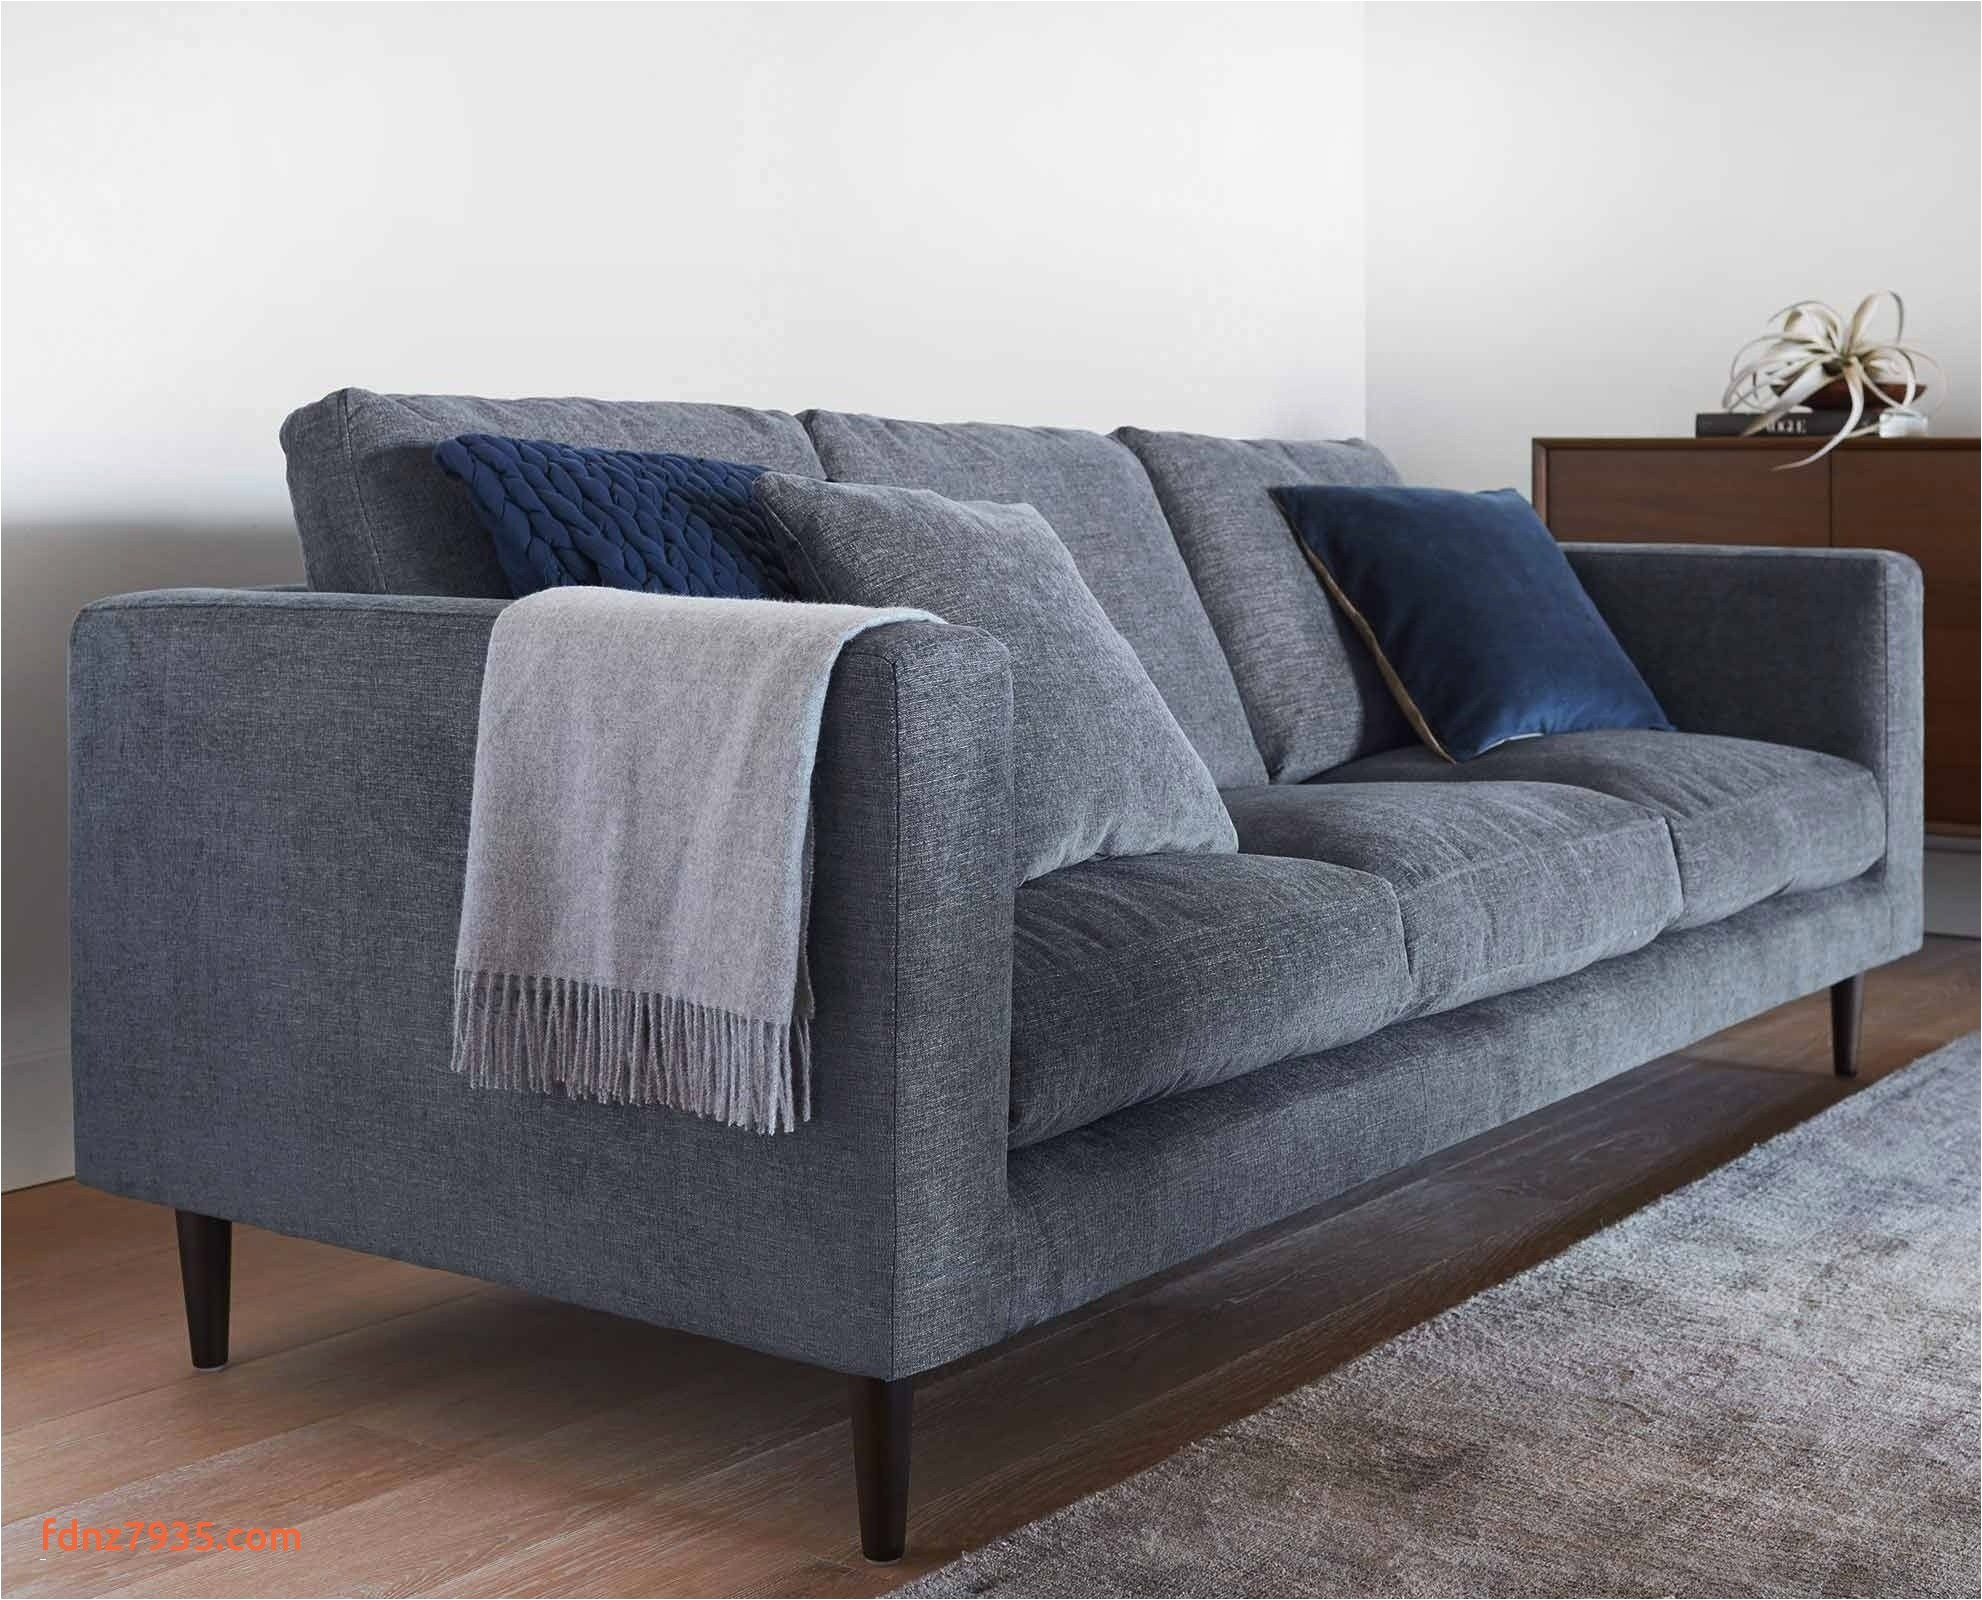 full size of futon exquisit wayfair futon couch furniture furniture www wayfair furniture 0d sleeper